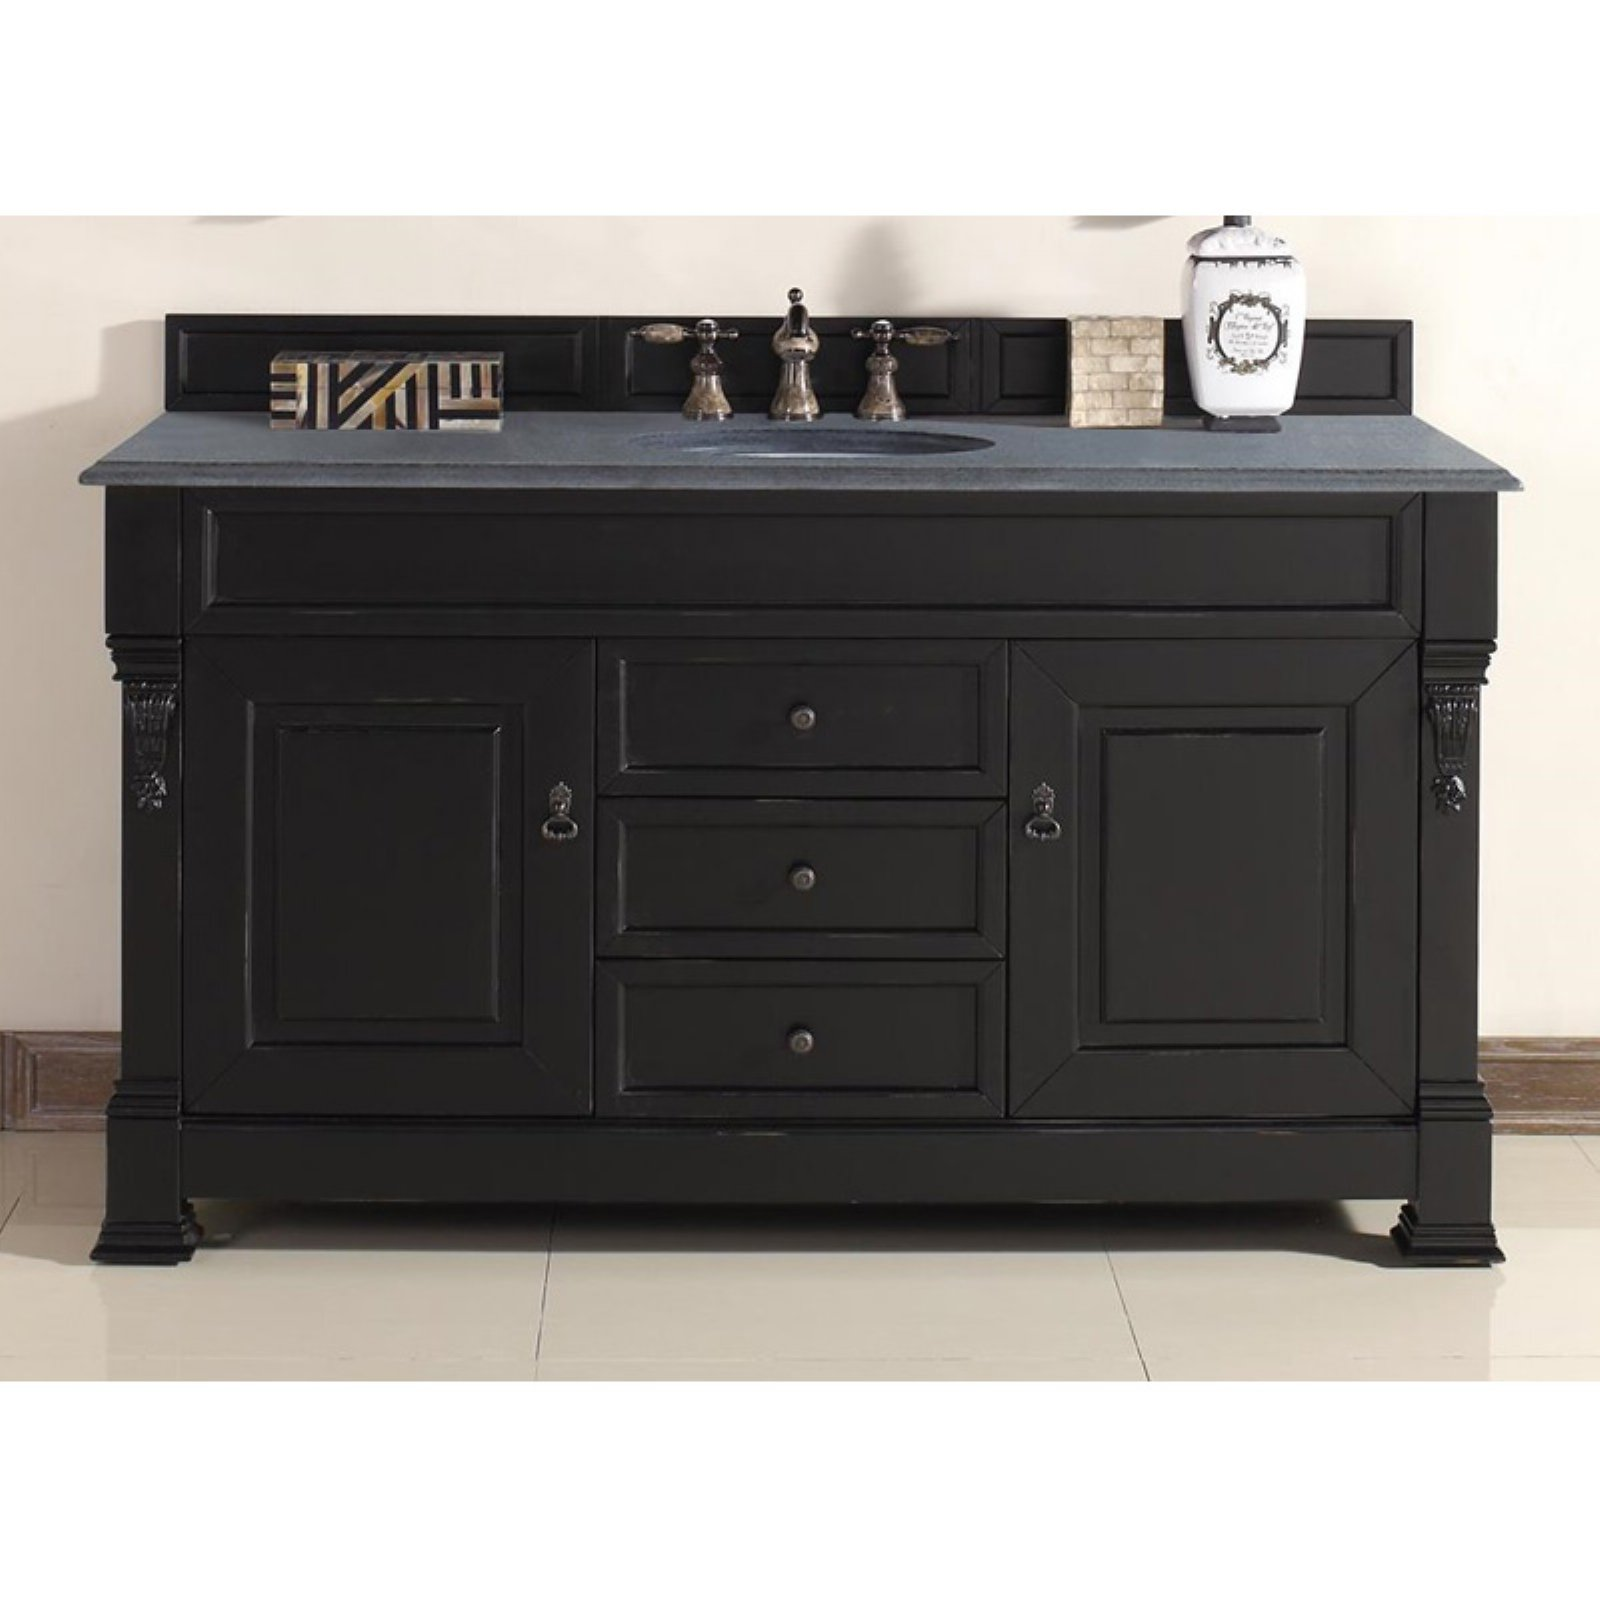 James Martin Brookfield 60 in. Single Bathroom Vanity